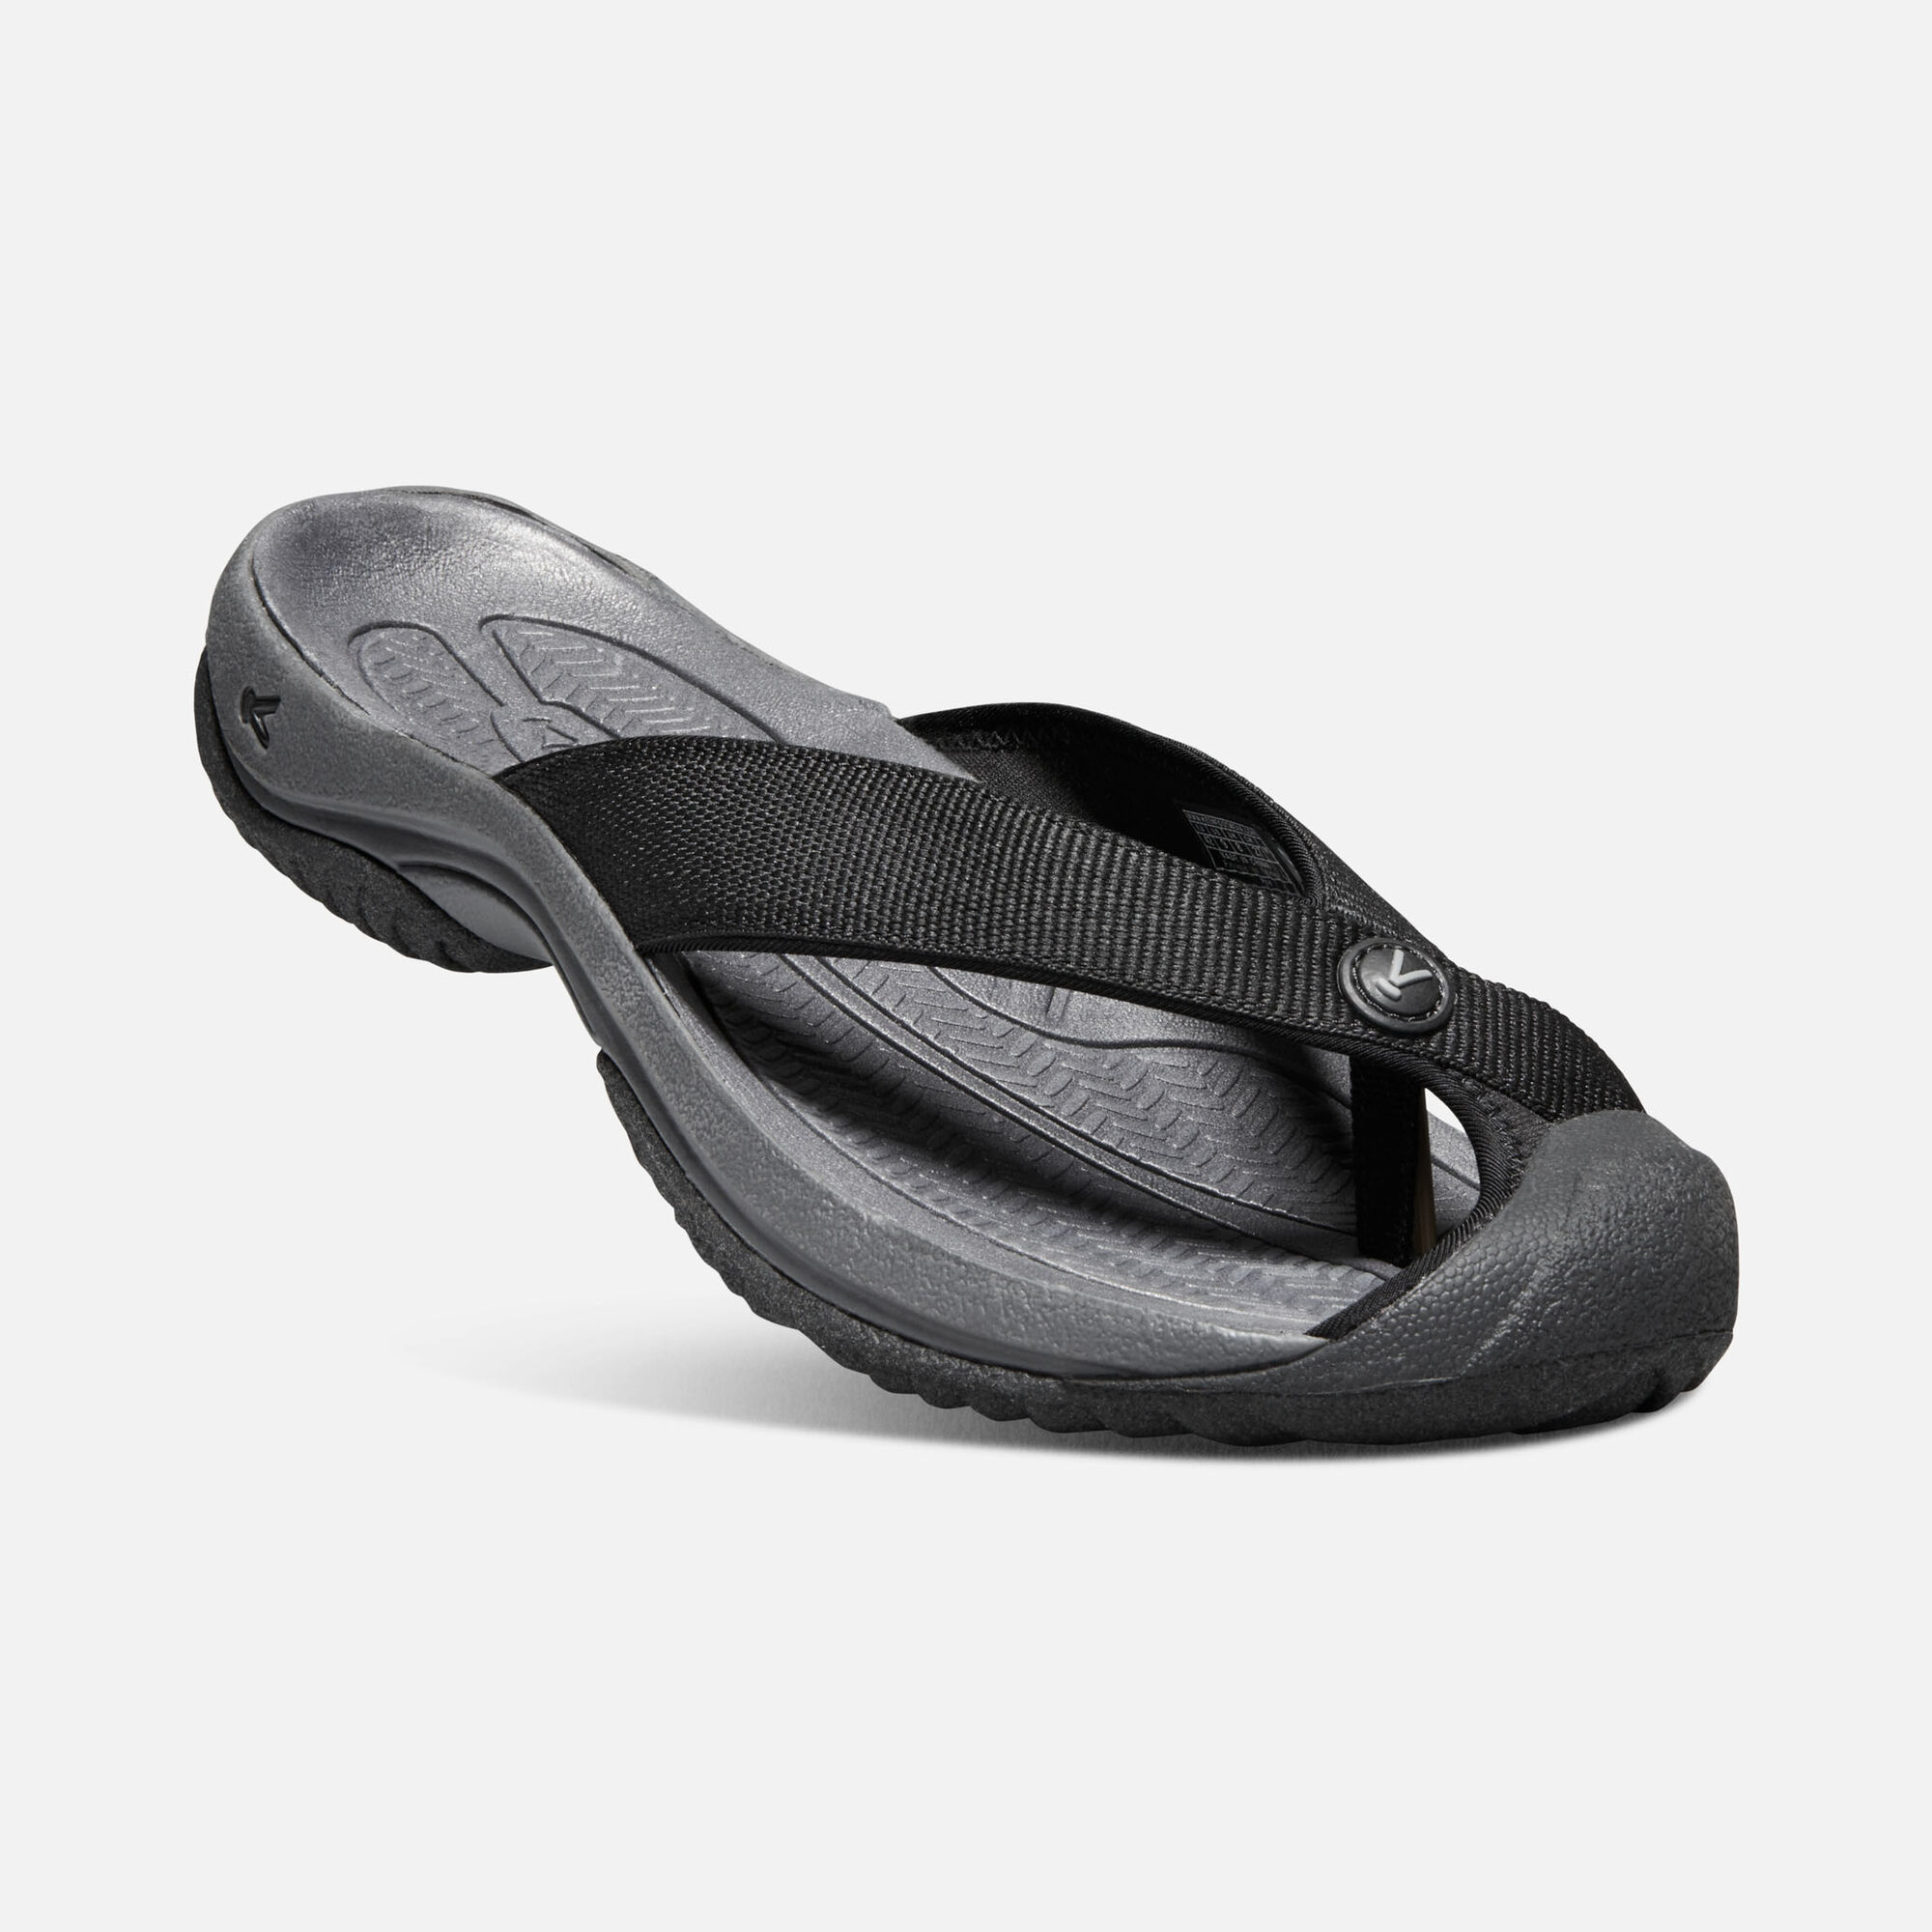 waimea guys Made with tough polyester webbing, the all-terrain keen newport h2 sandals provide protection, function and freedom for your feet available at rei, 100% satisfaction guaranteed.